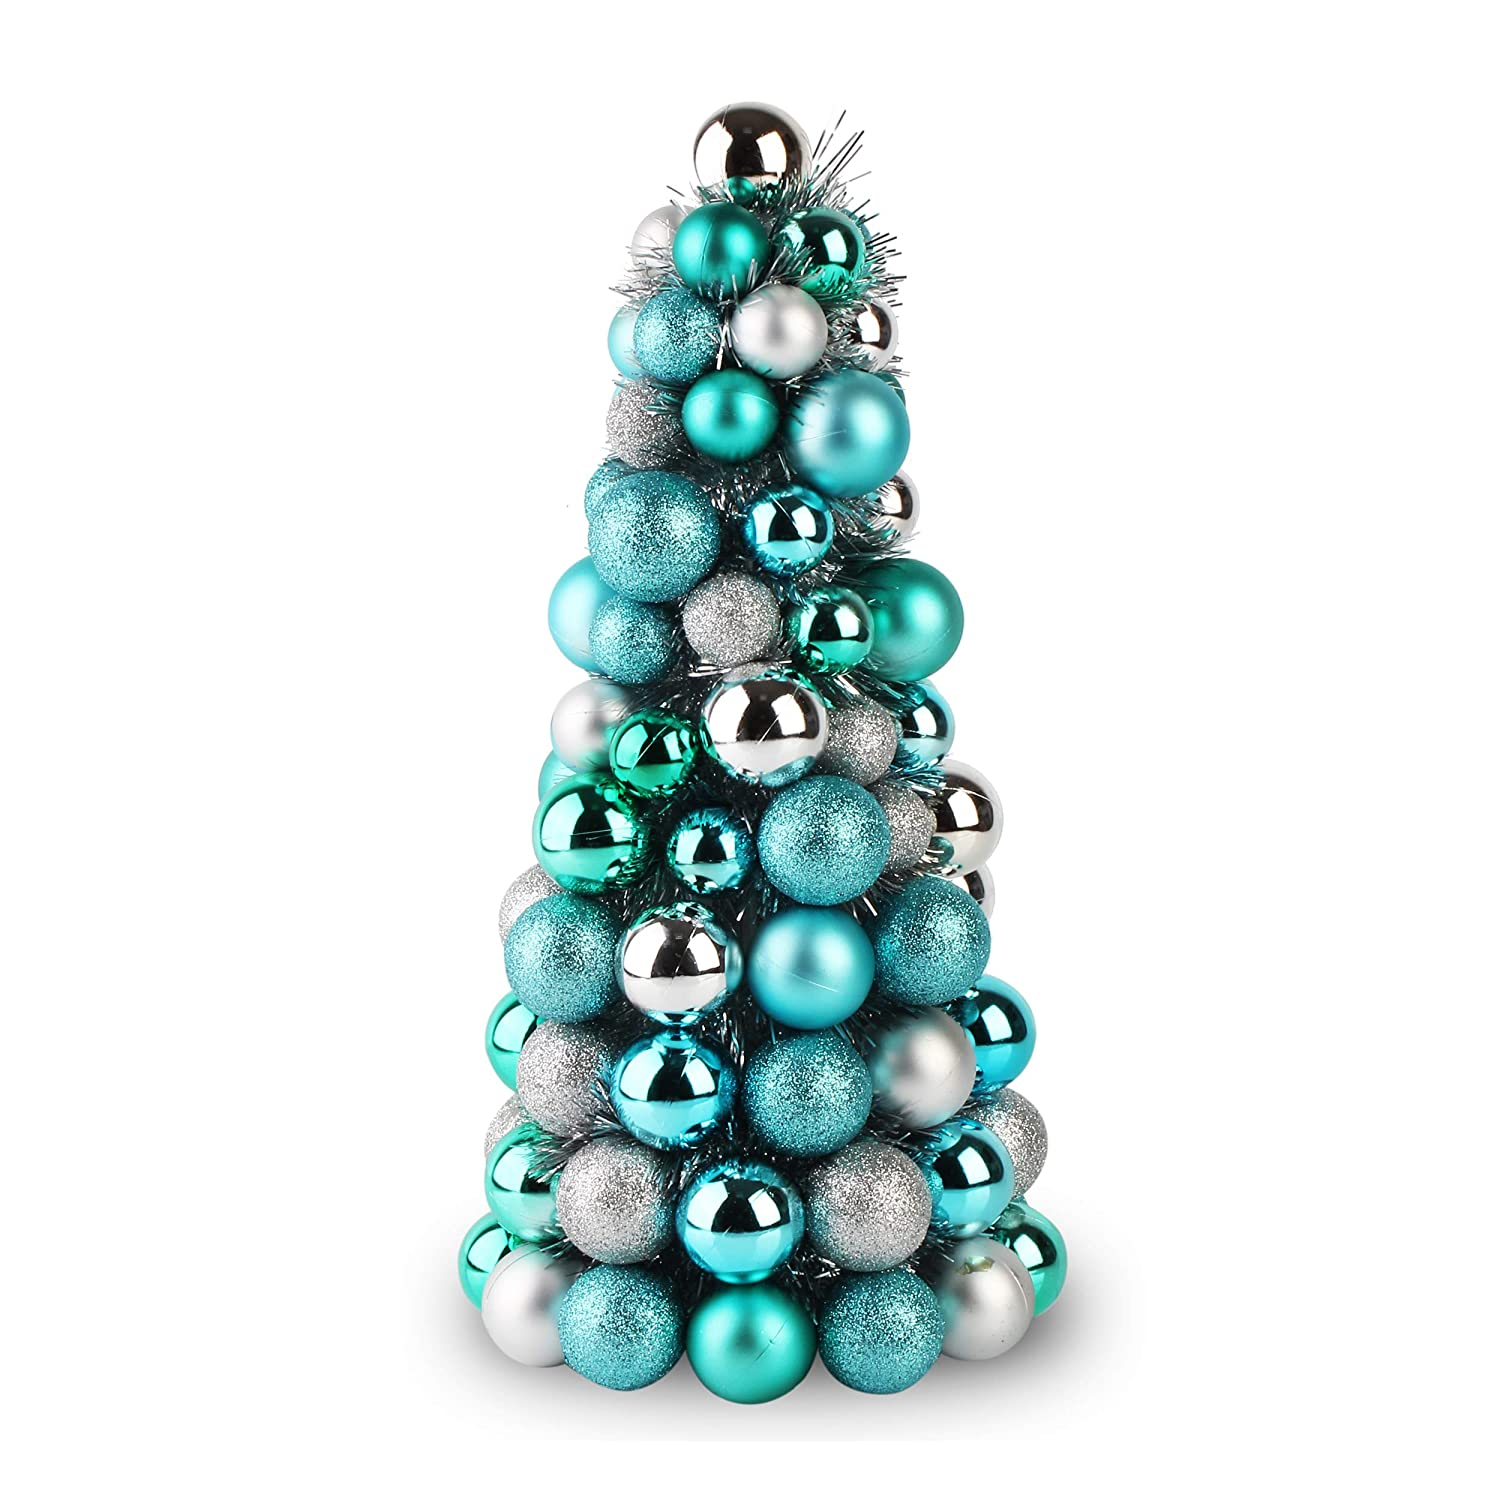 Costyleen 16 Inch Christmas Ball Tree Fireplace Table Decoration Home Party Decorative Ball Ornaments Xmas Tree Decors Blue Silver